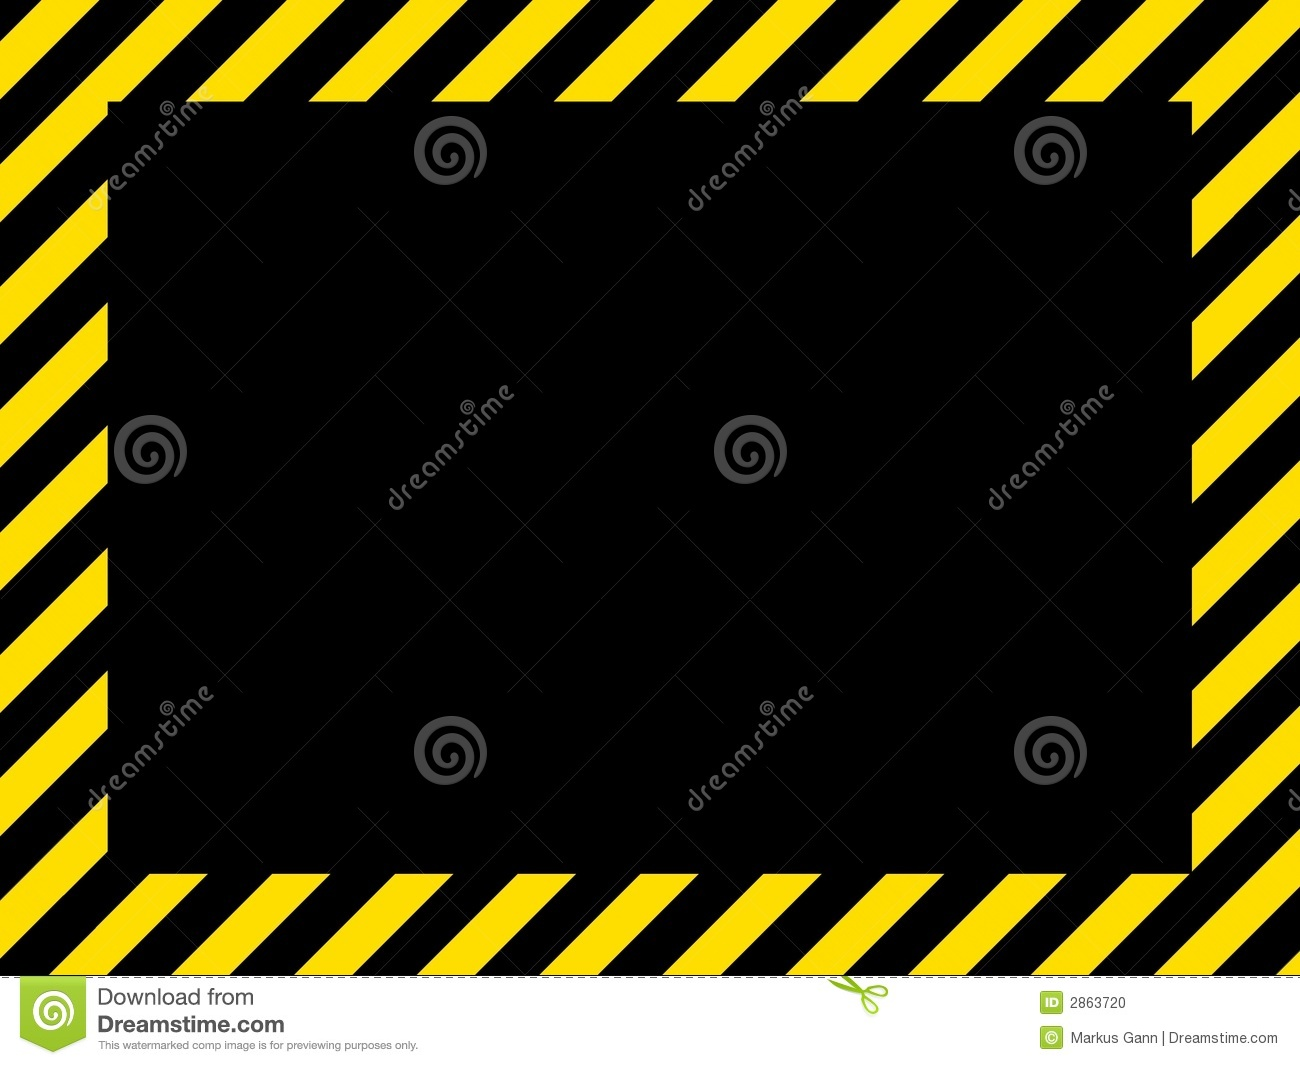 Border frame with black and yellow stripe on white background - Black Border Frame Hand Stripes Illustration Danger Texture Made Background